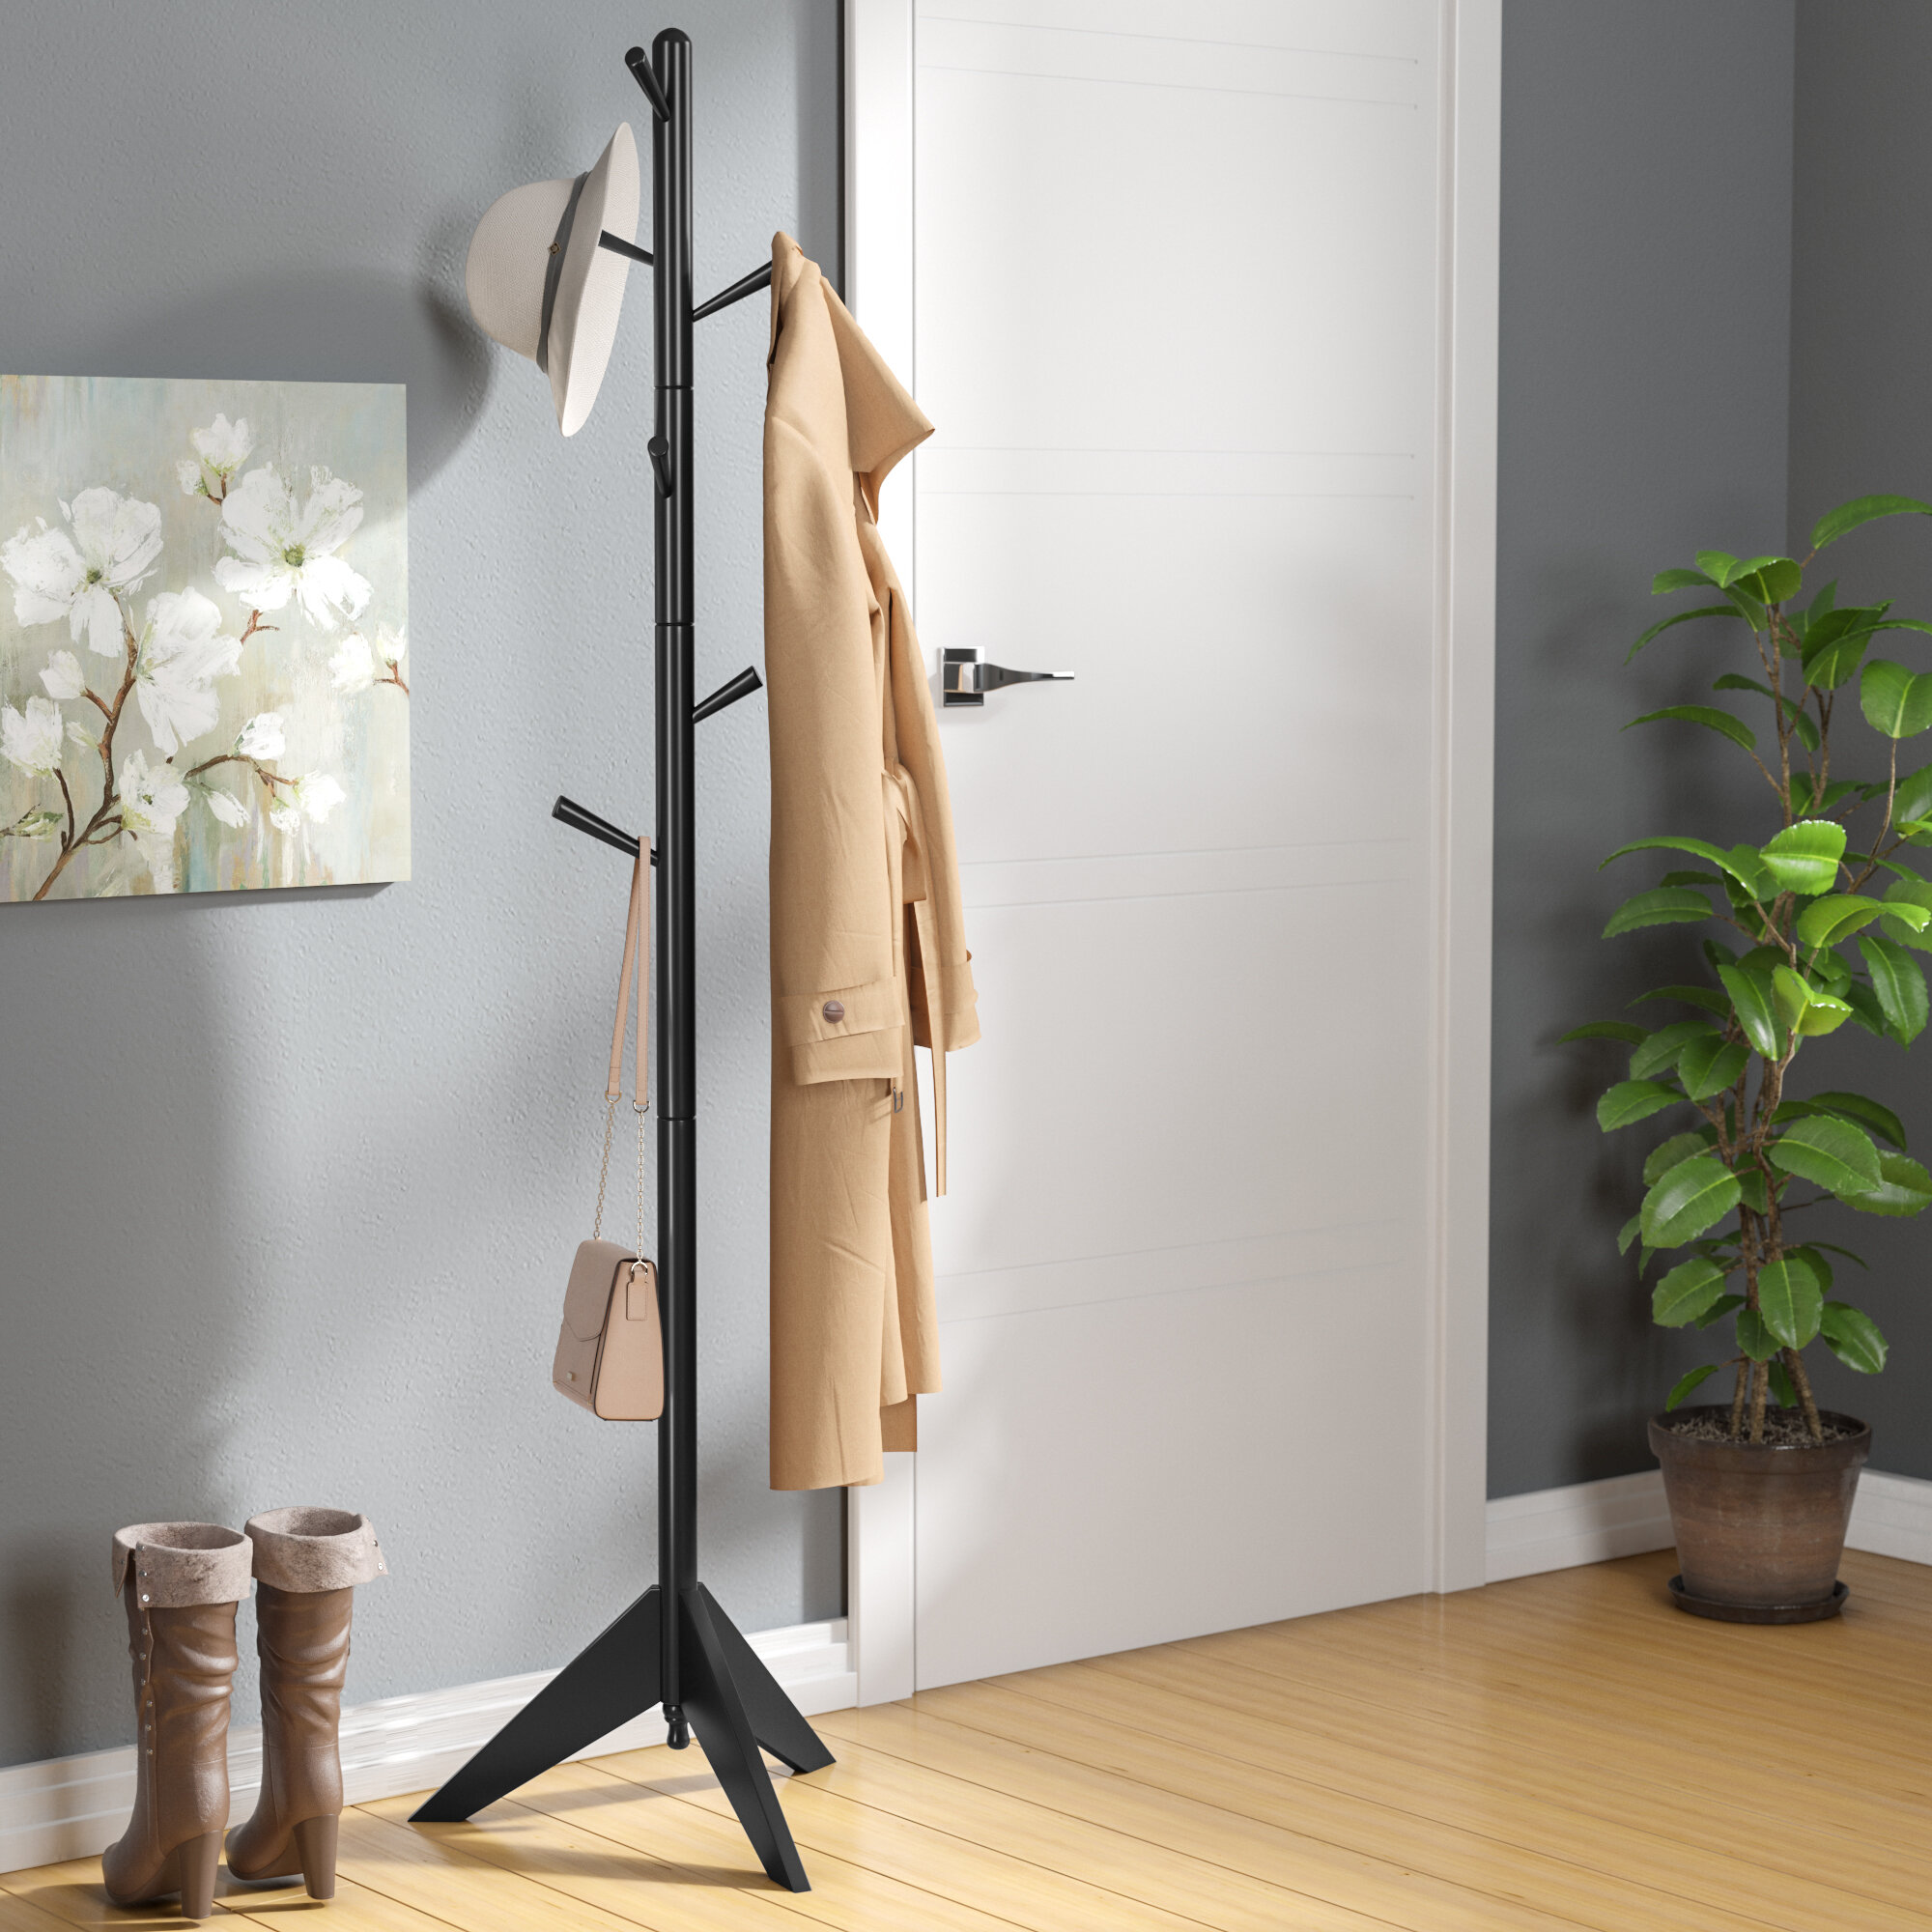 rack shipping home cover bunnings today lowe standing freestanding ikea lowes shelves with chrome ov garment steel nz light modern design free whitmor walmart wardrobe diy racks wooden rolling clothing decoration target commercial clothes